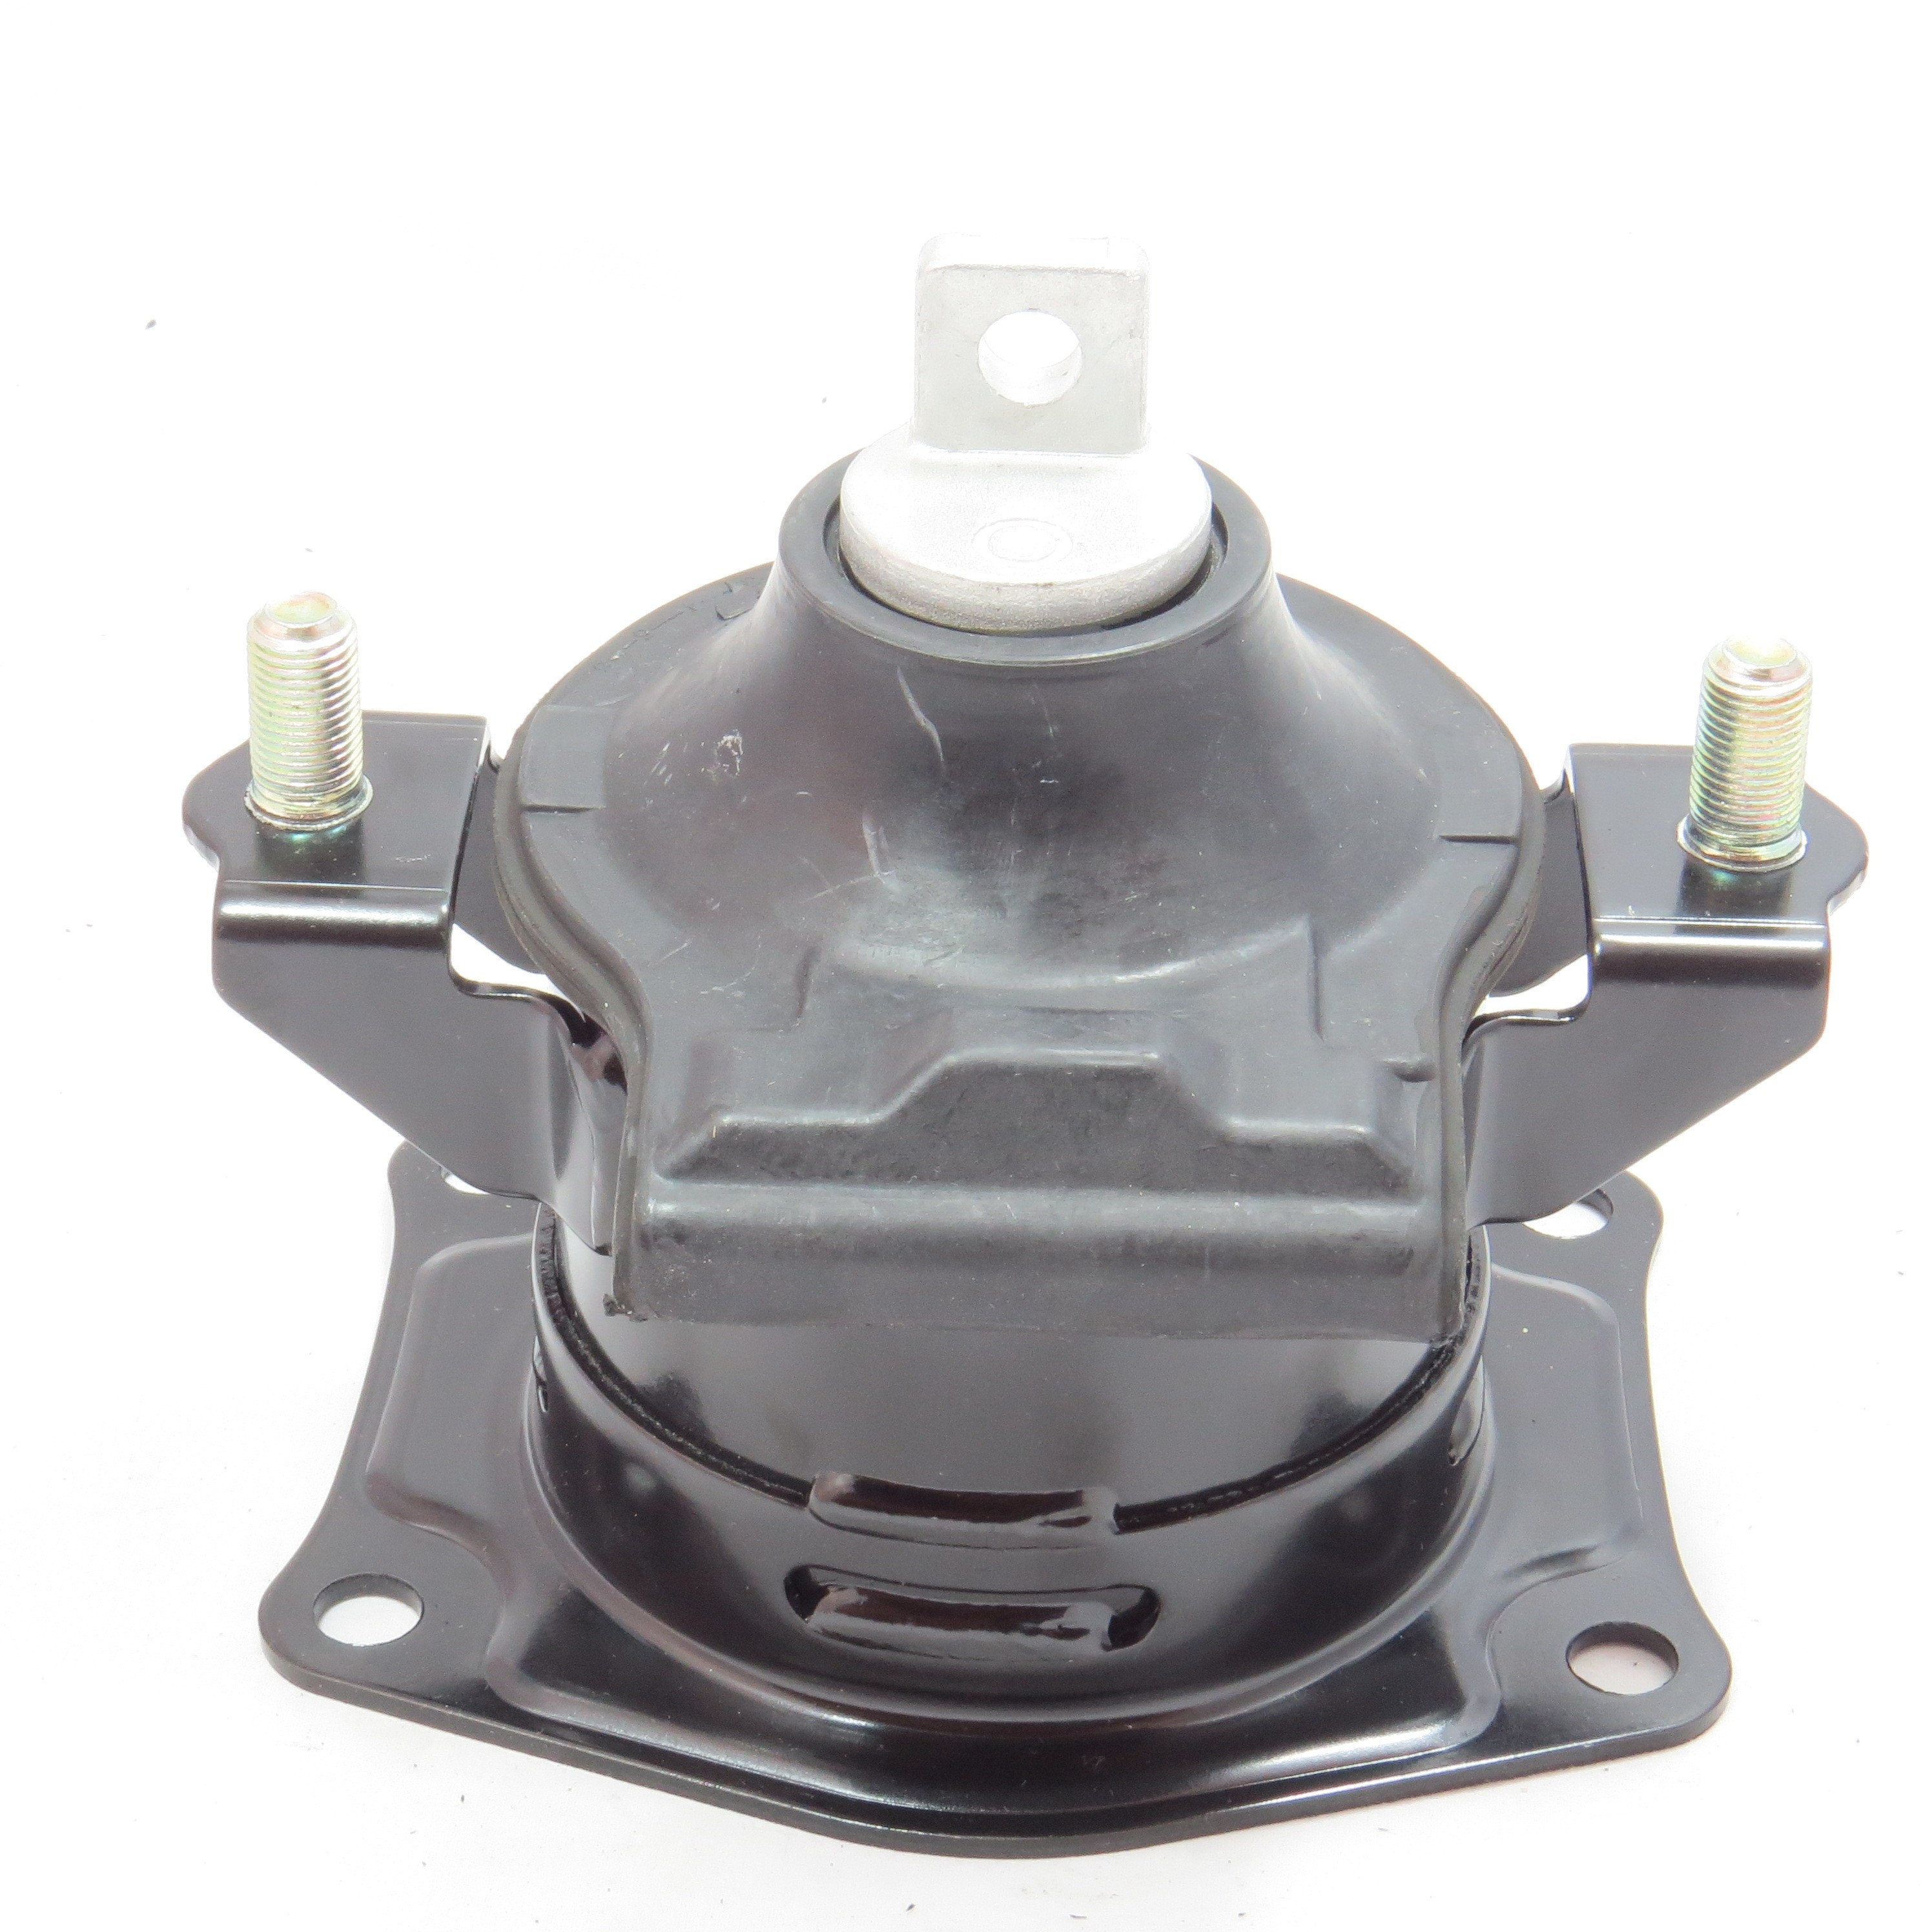 Engine Mount Set Of 8 For 04-06 Acura TL 3.2L Automatic